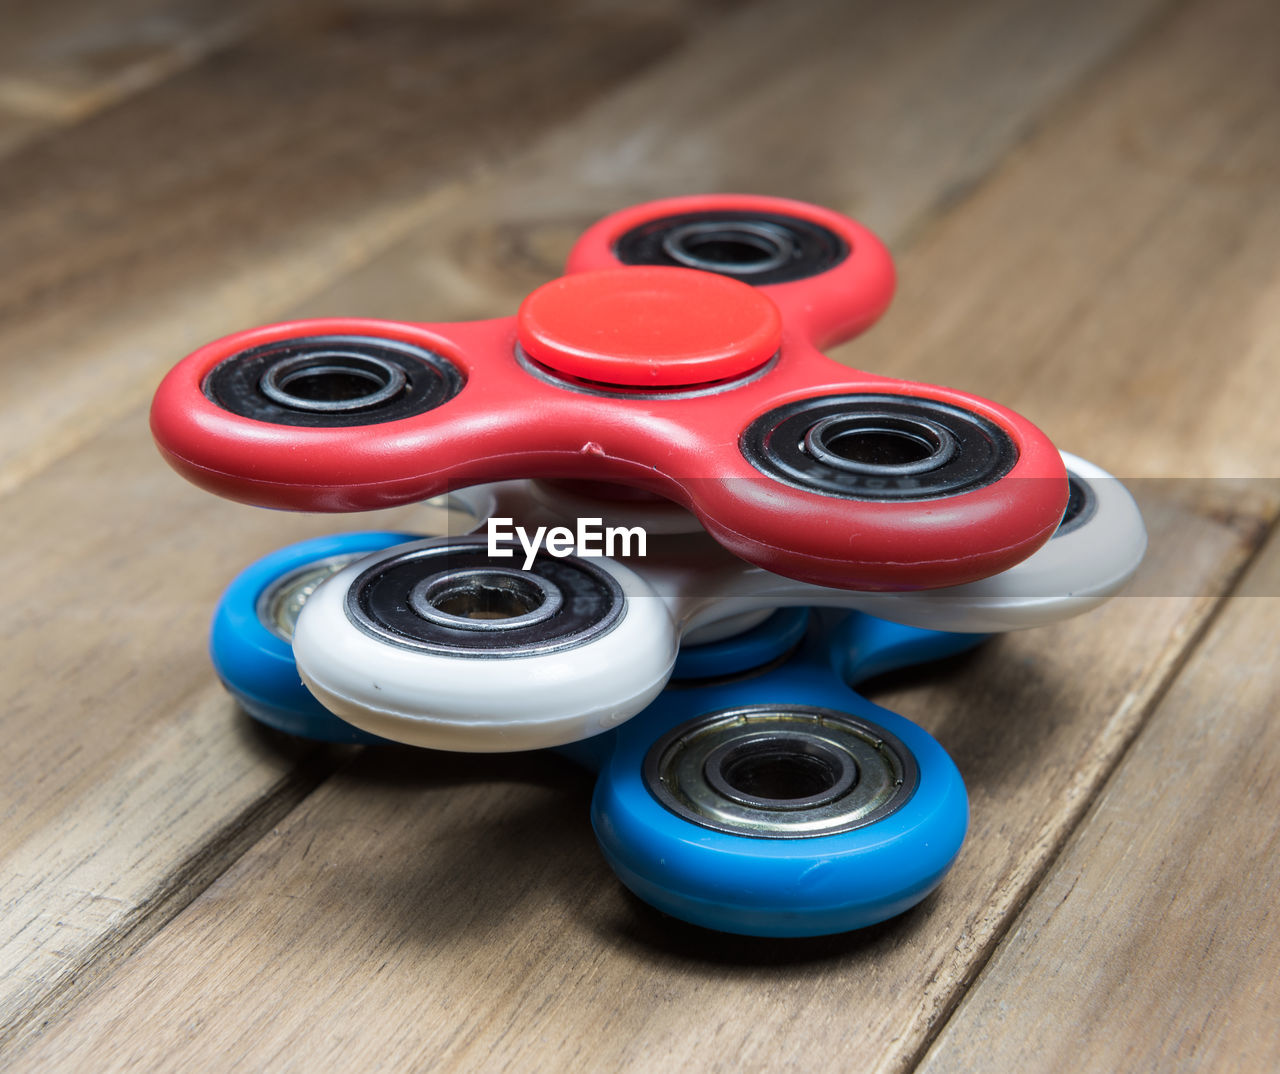 High Angle View Of Colorful Fidget Spinners On Wooden Table